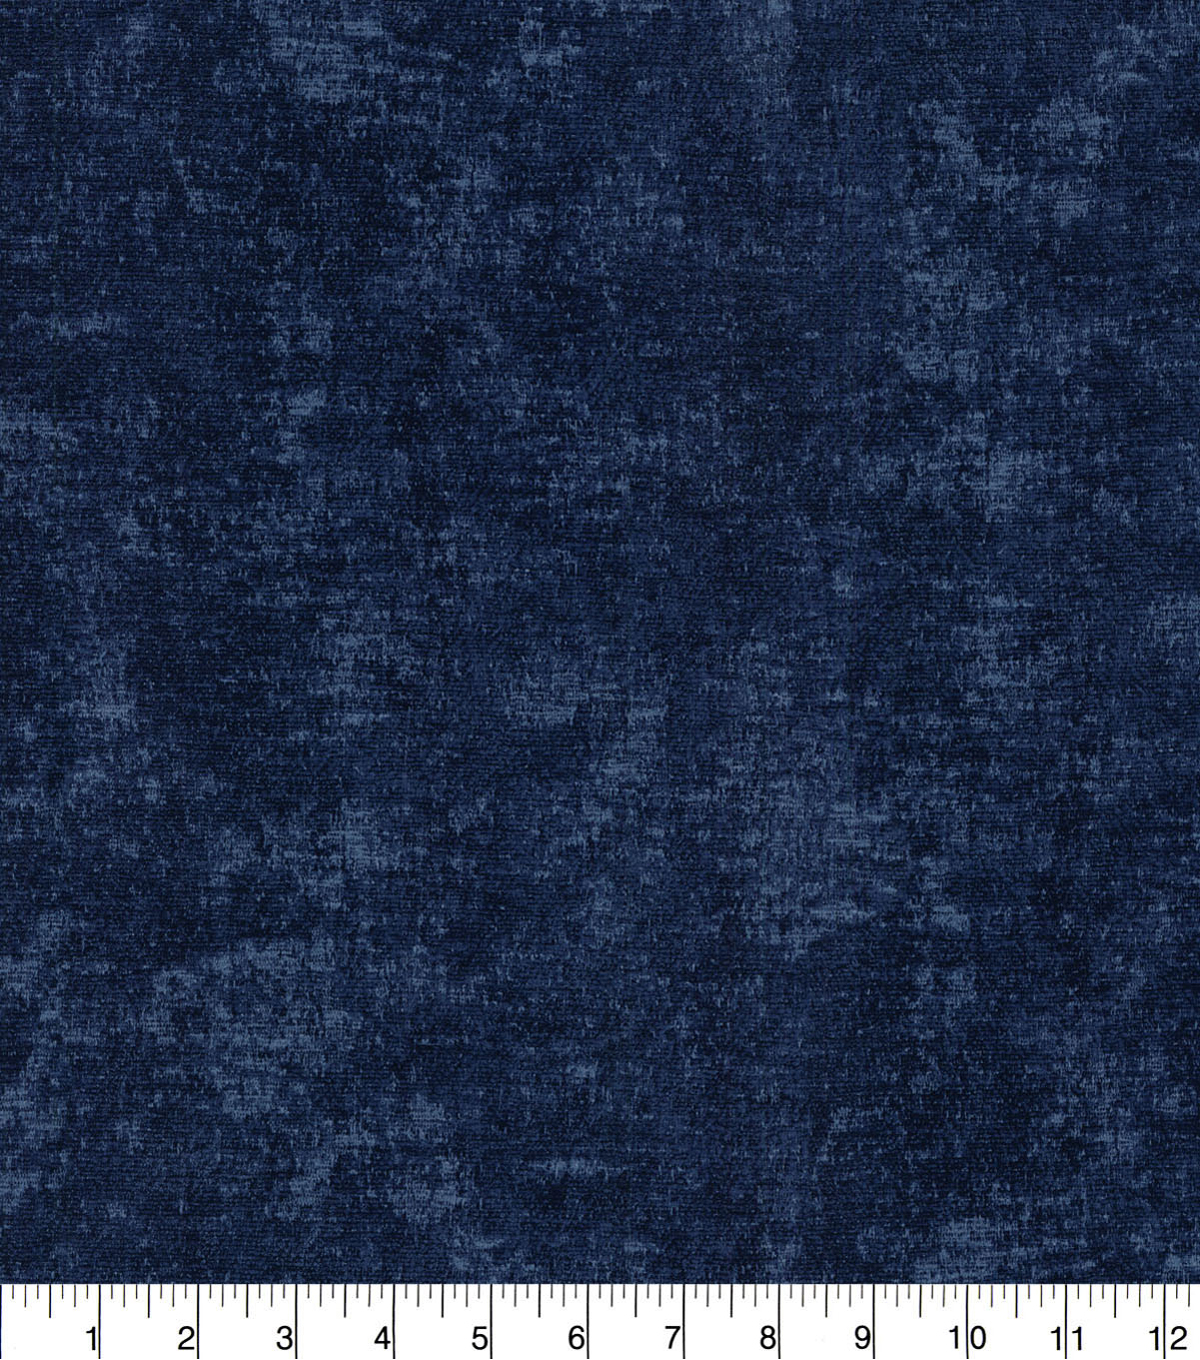 PKL Studio Upholstery Décor Fabric-Highgarden Midnight